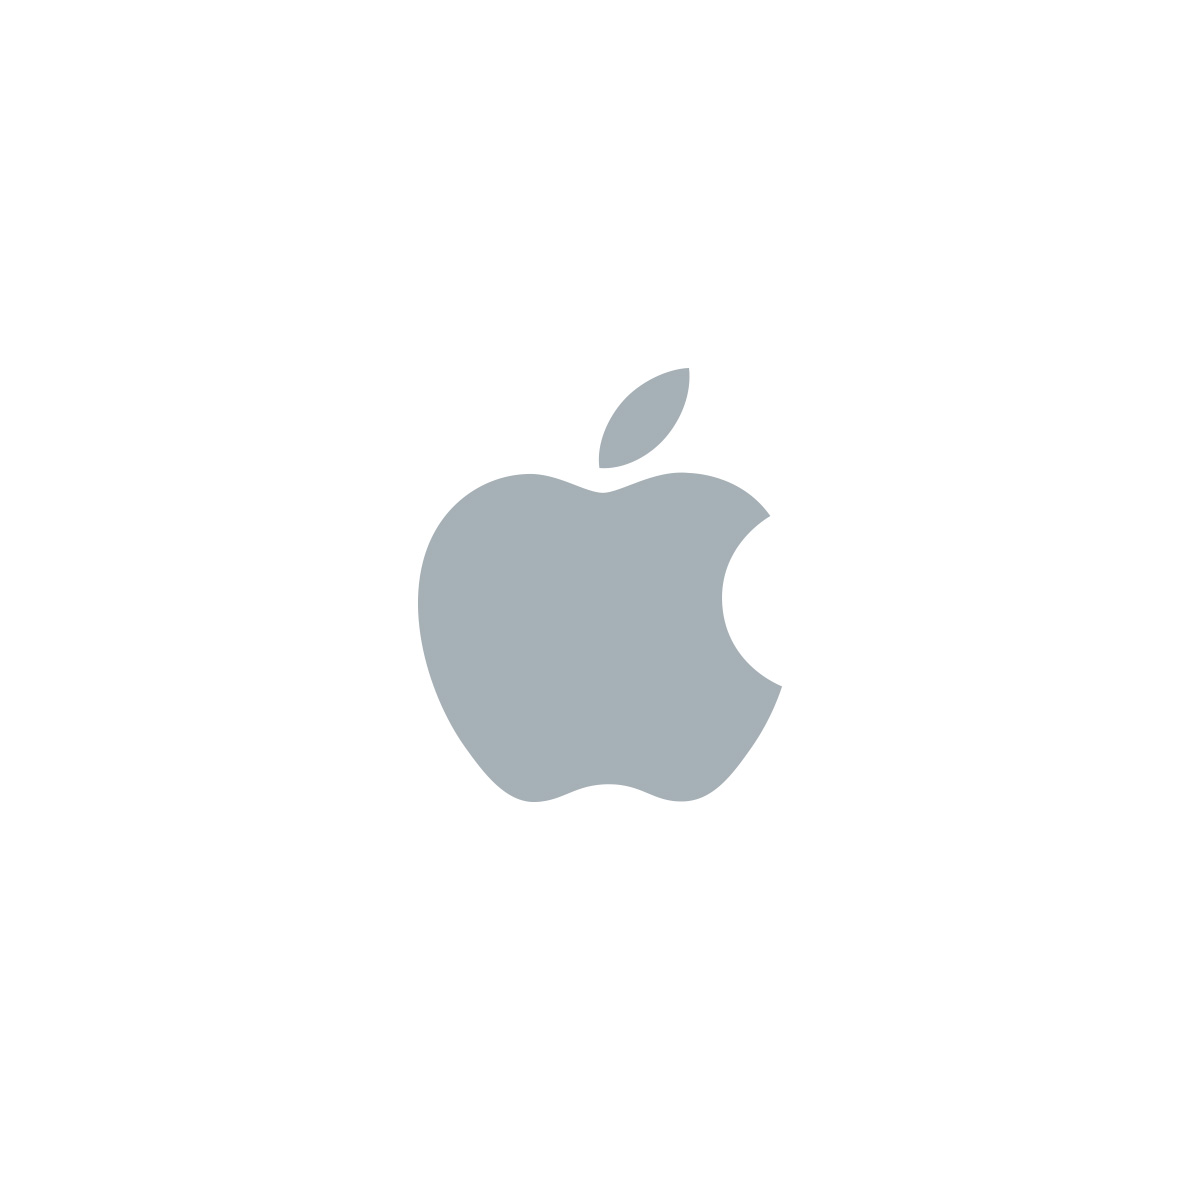 apple iphone 6 drivers for windows 7